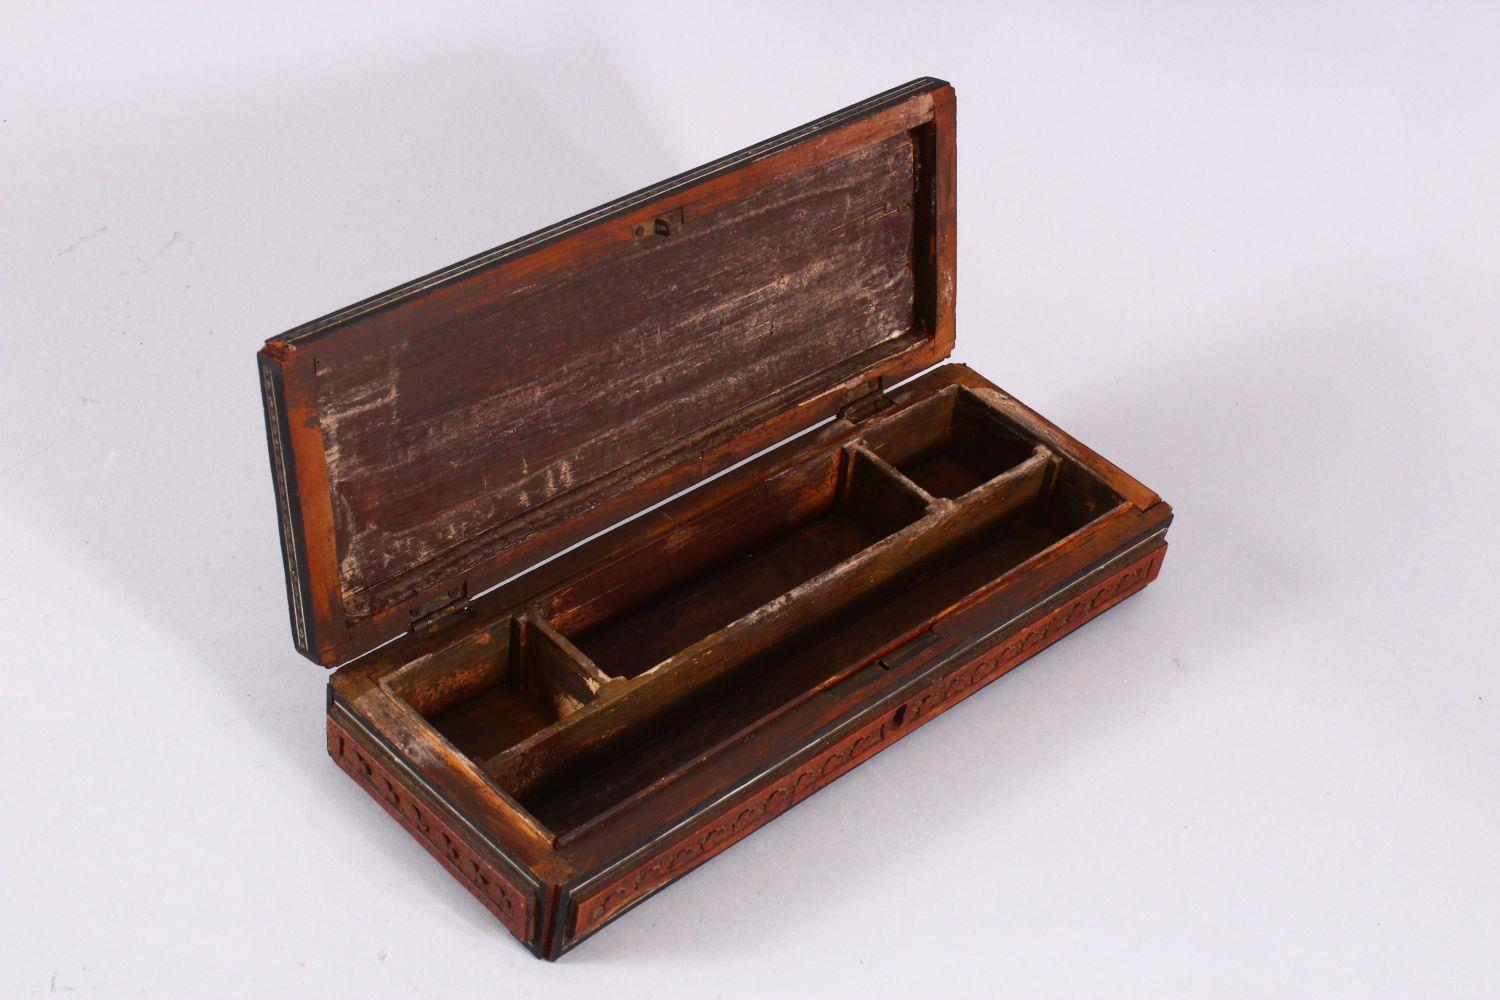 A 19TH / 20TH CENTURY INDIAN CARVED WOODEN BOX, carved with temples, animals and foliage, with - Image 3 of 4